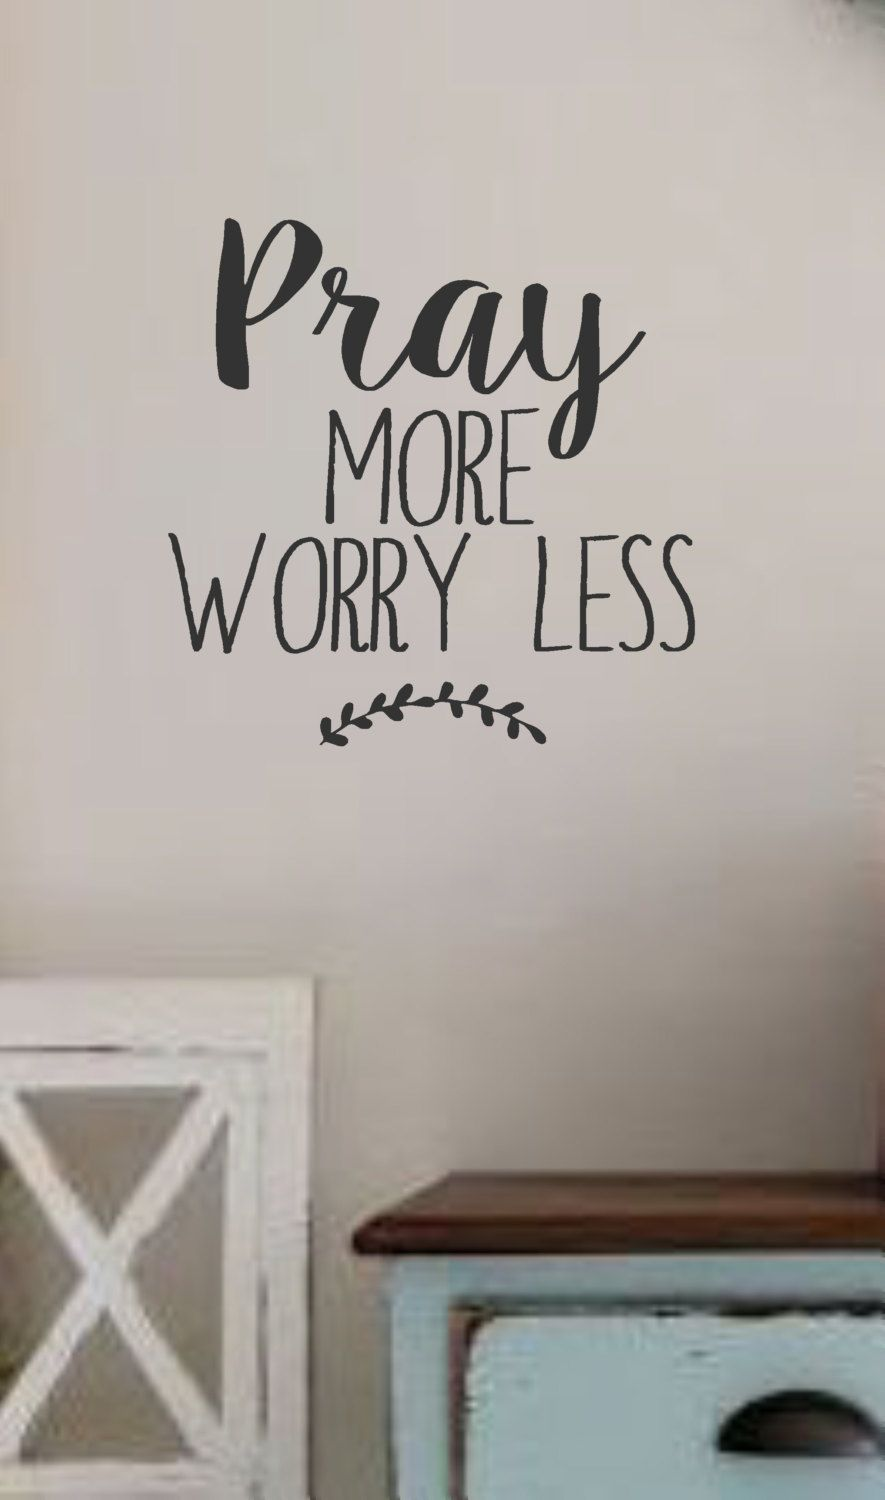 Pray more worry less vinyl wall decal wall quotes bible quotes pray more worry less vinyl wall decal wall quotes bible quotes verses amipublicfo Gallery